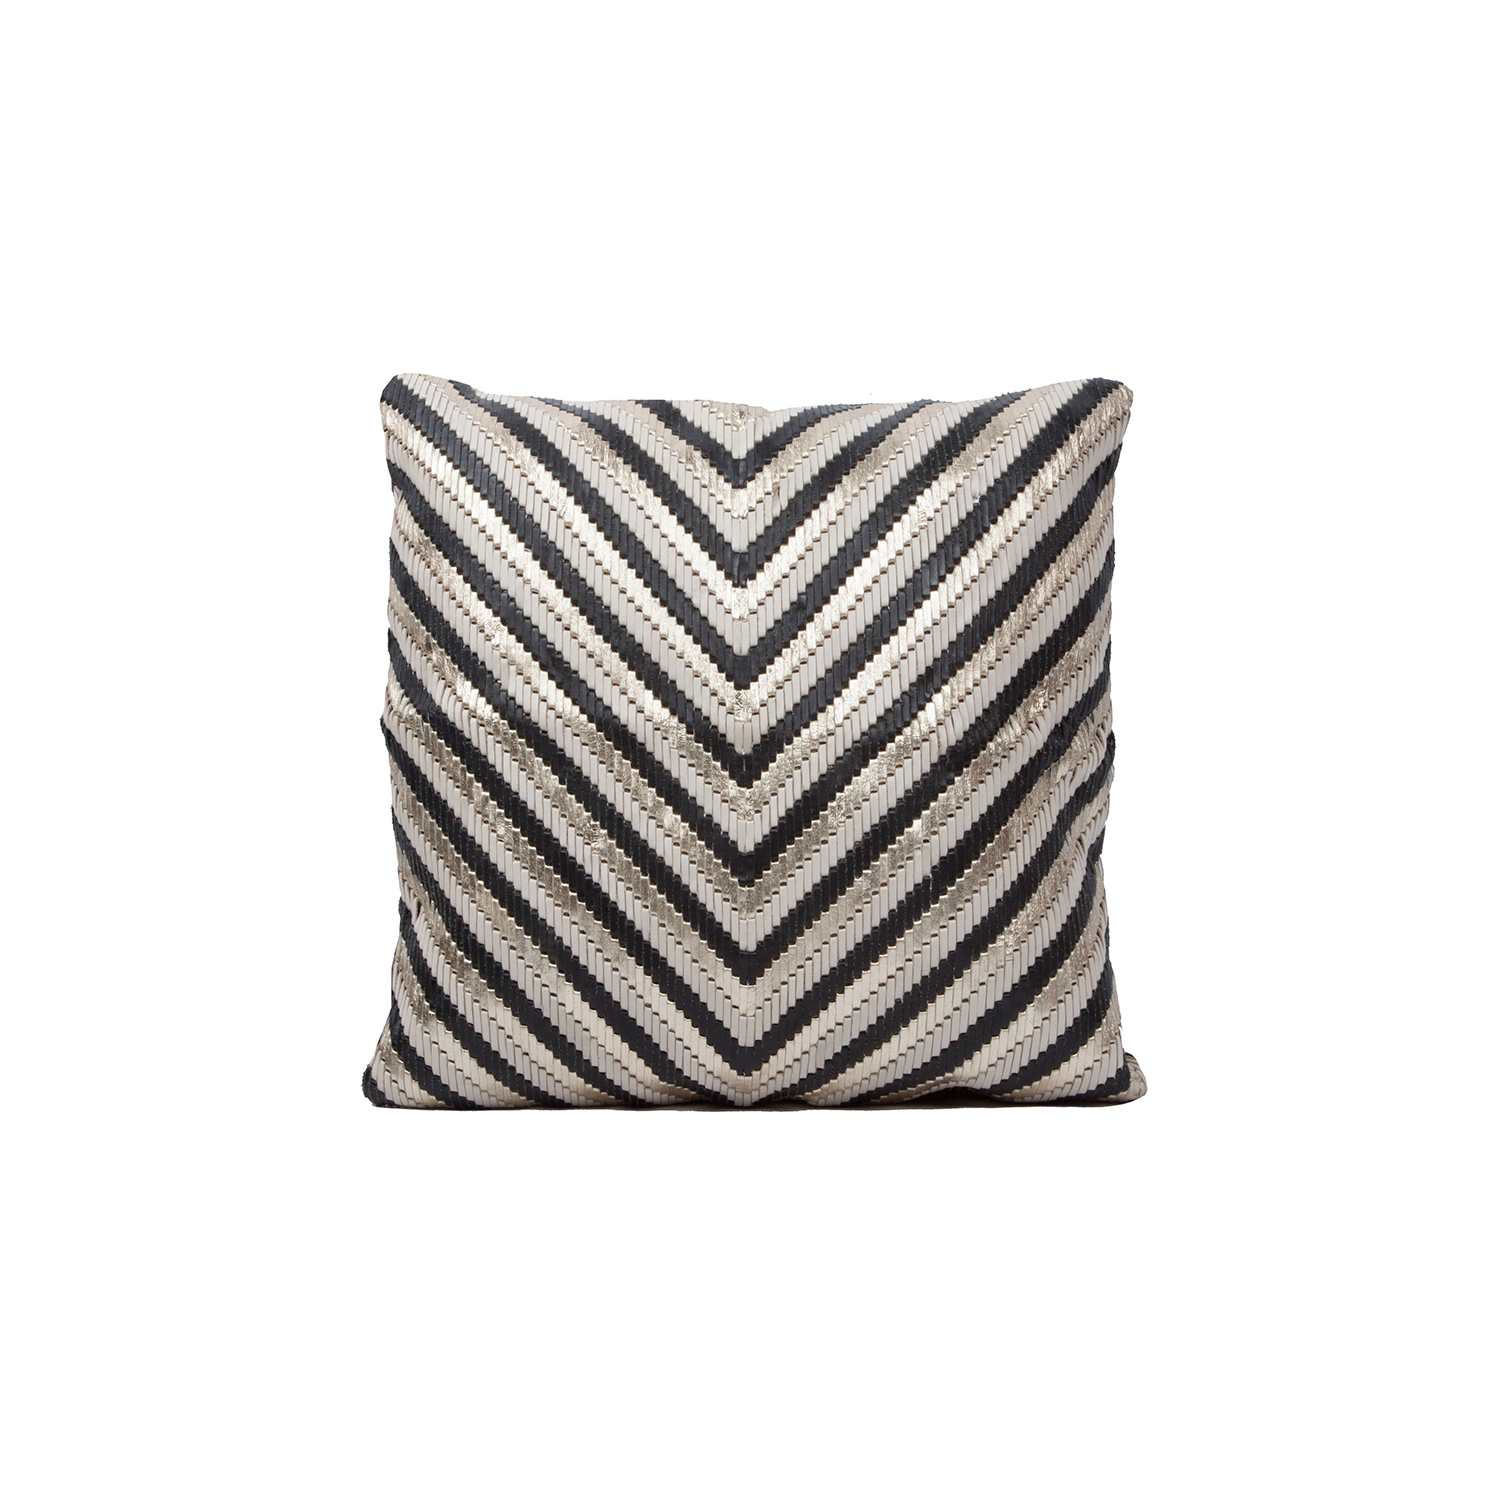 Asteca Woven Leather Cushion Square - The Asteca Woven Leather Cushion is designed to complement an ambient with a natural and sophisticated feeling. This cushion style is available in pleated leather or pleated suede leather. Elisa Atheniense woven handmade leather cushions are specially manufactured in Brazil using an exclusive treated leather that brings the soft feel touch to every single piece.   The front panel is handwoven in leather and the back panel is 100% Pes, made in Brazil.  The inner cushion is available in Hollow Fibre and European Duck Feathers, made in the UK.  Asteca Woven Leather Cushion is available in multiple colours of leather. Please enquire for colour combination, see colour chart for reference.   | Matter of Stuff